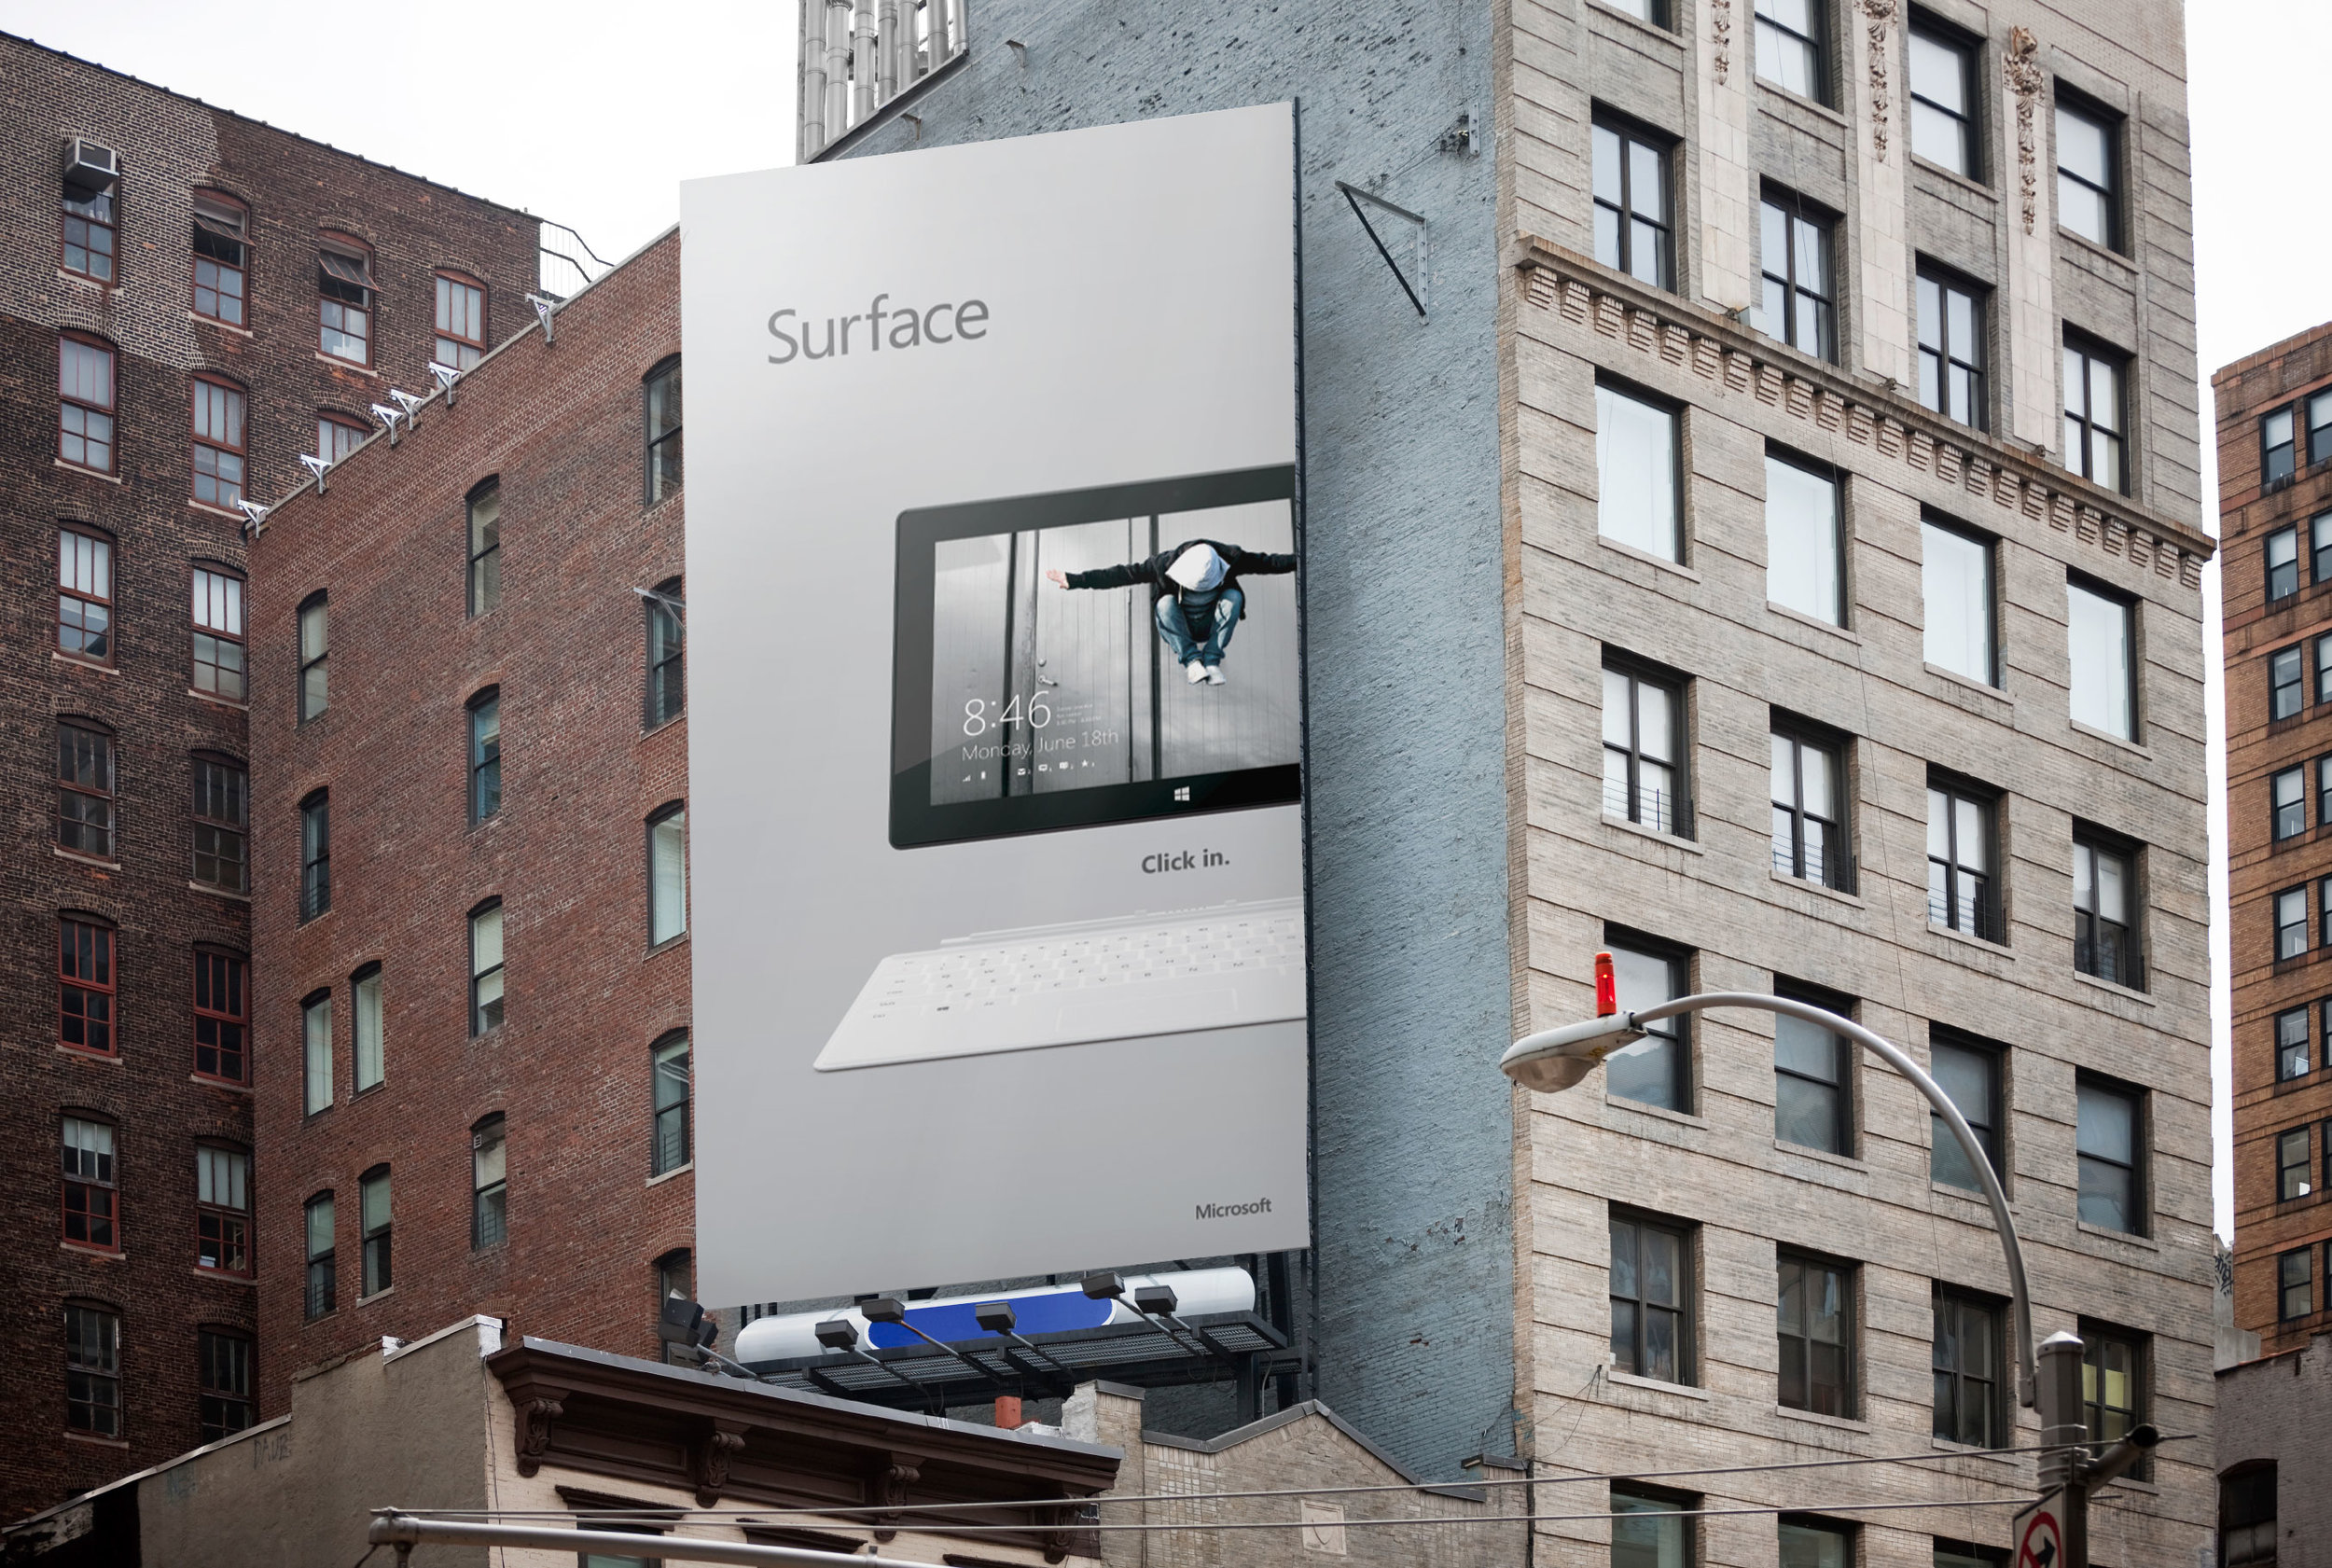 outdoor media advertising for consumer tech products